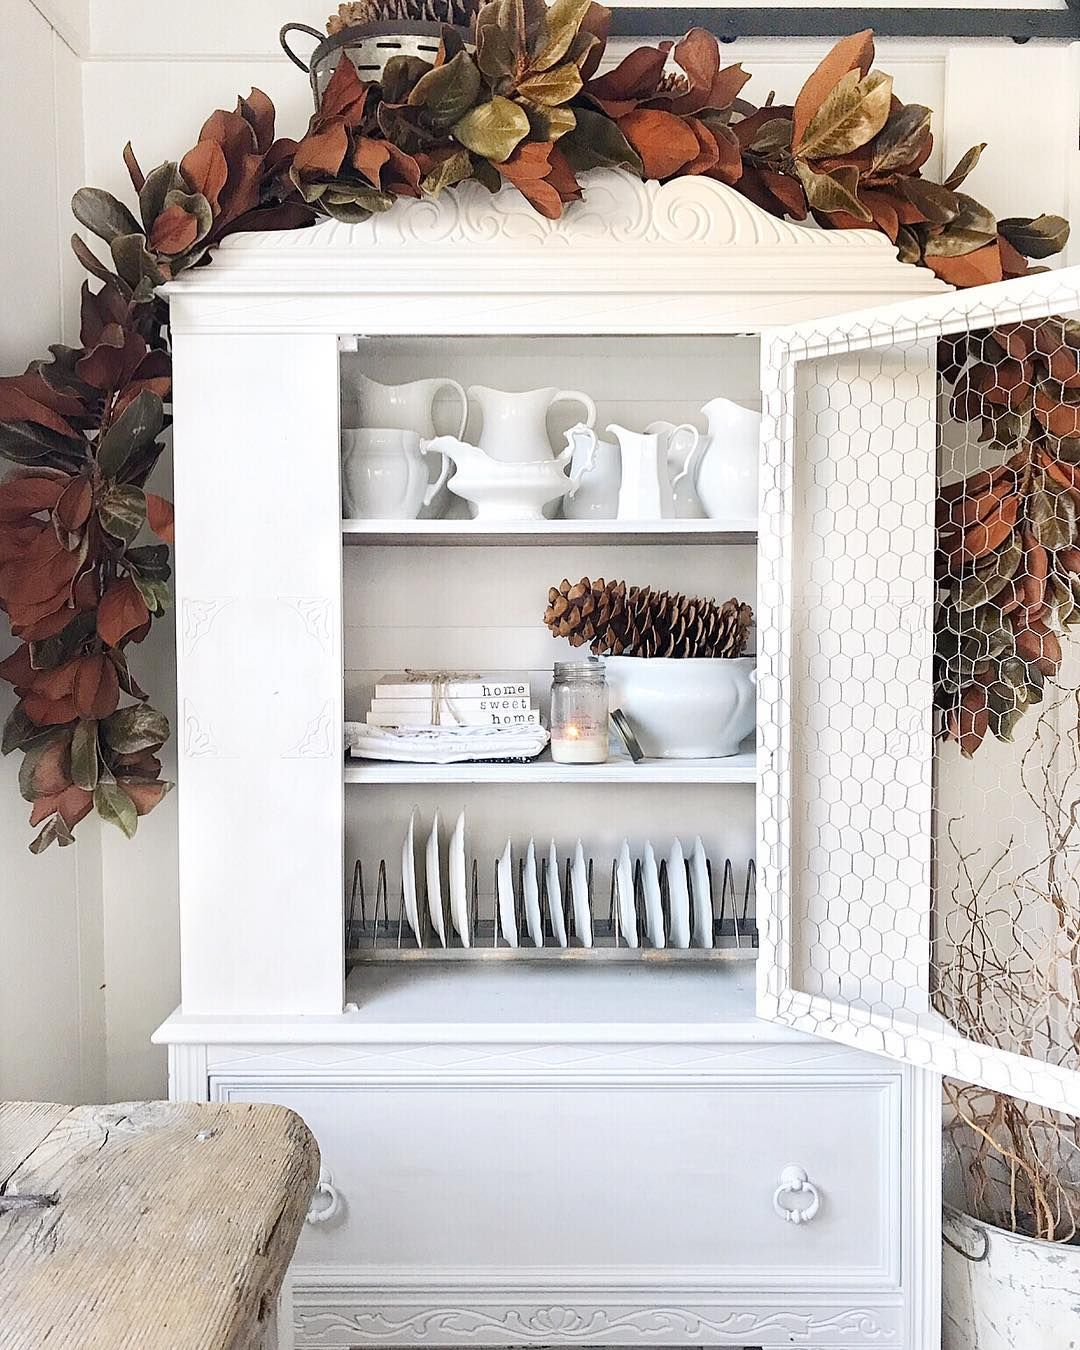 Chicken Wire Dining Room Hutch Door via @toni_marianna